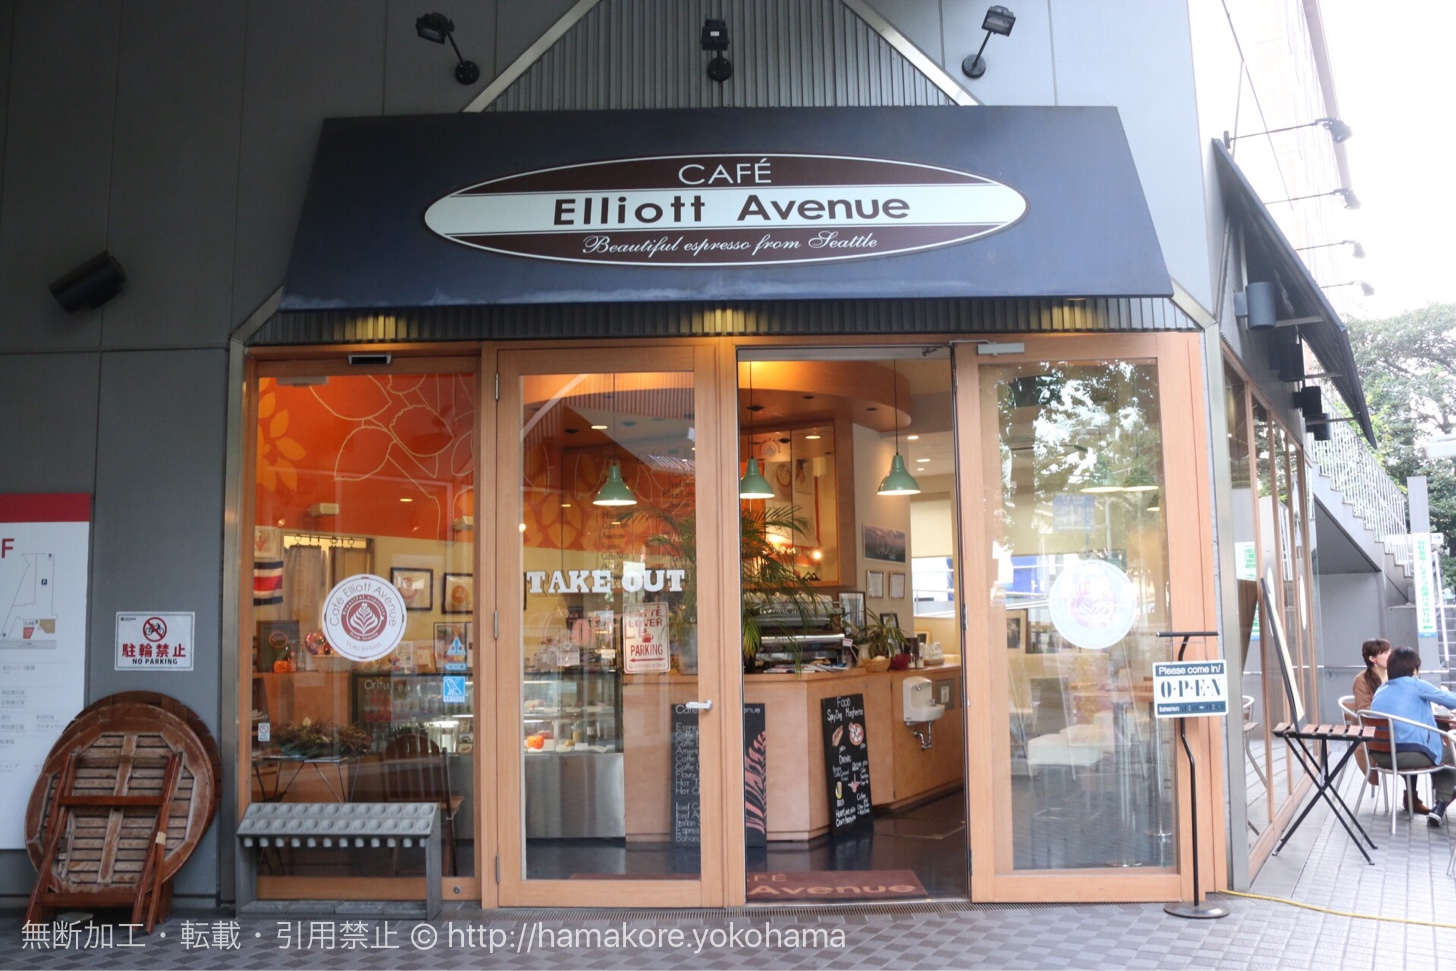 Cafe Elliott Avenue 外観